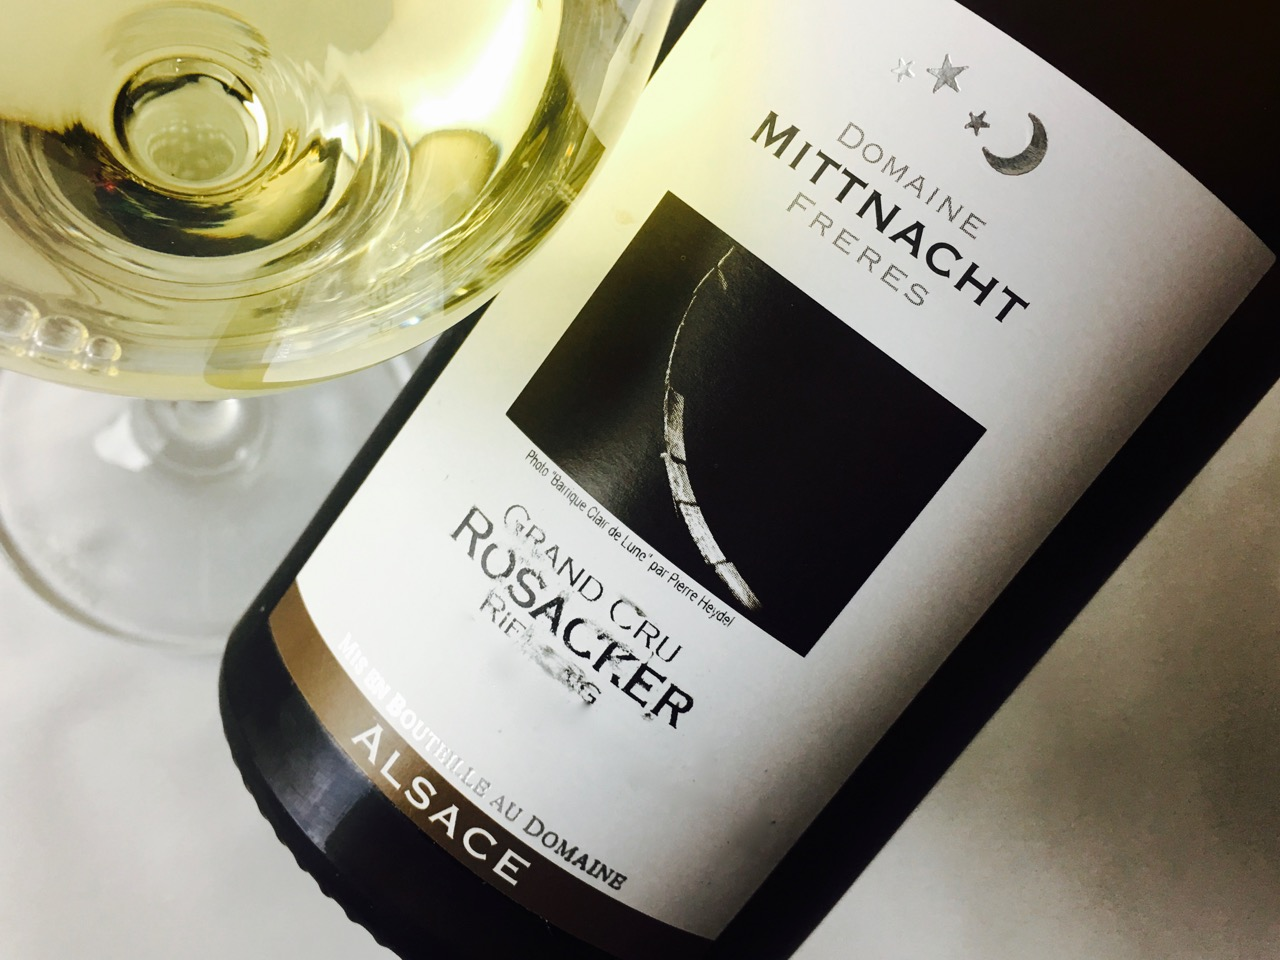 2012 Domaine Mittnacht Frères Riesling Rosacker Grand Cru Alsace